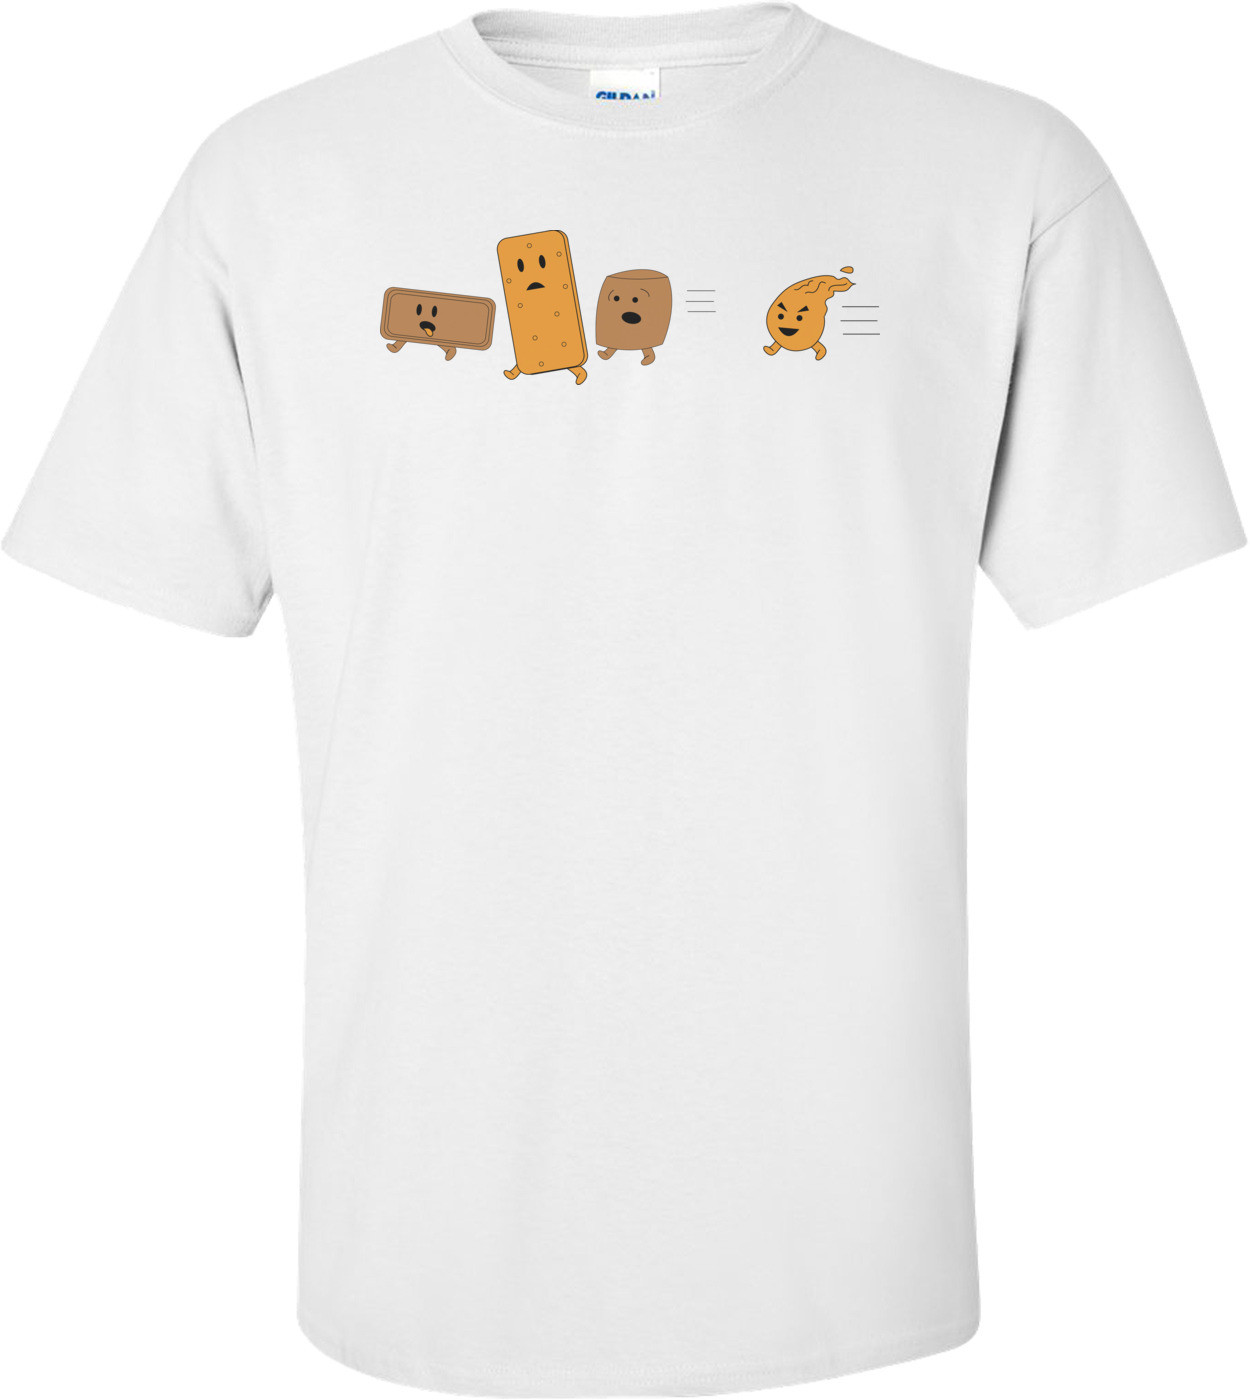 Running S'mores Funny Shirt